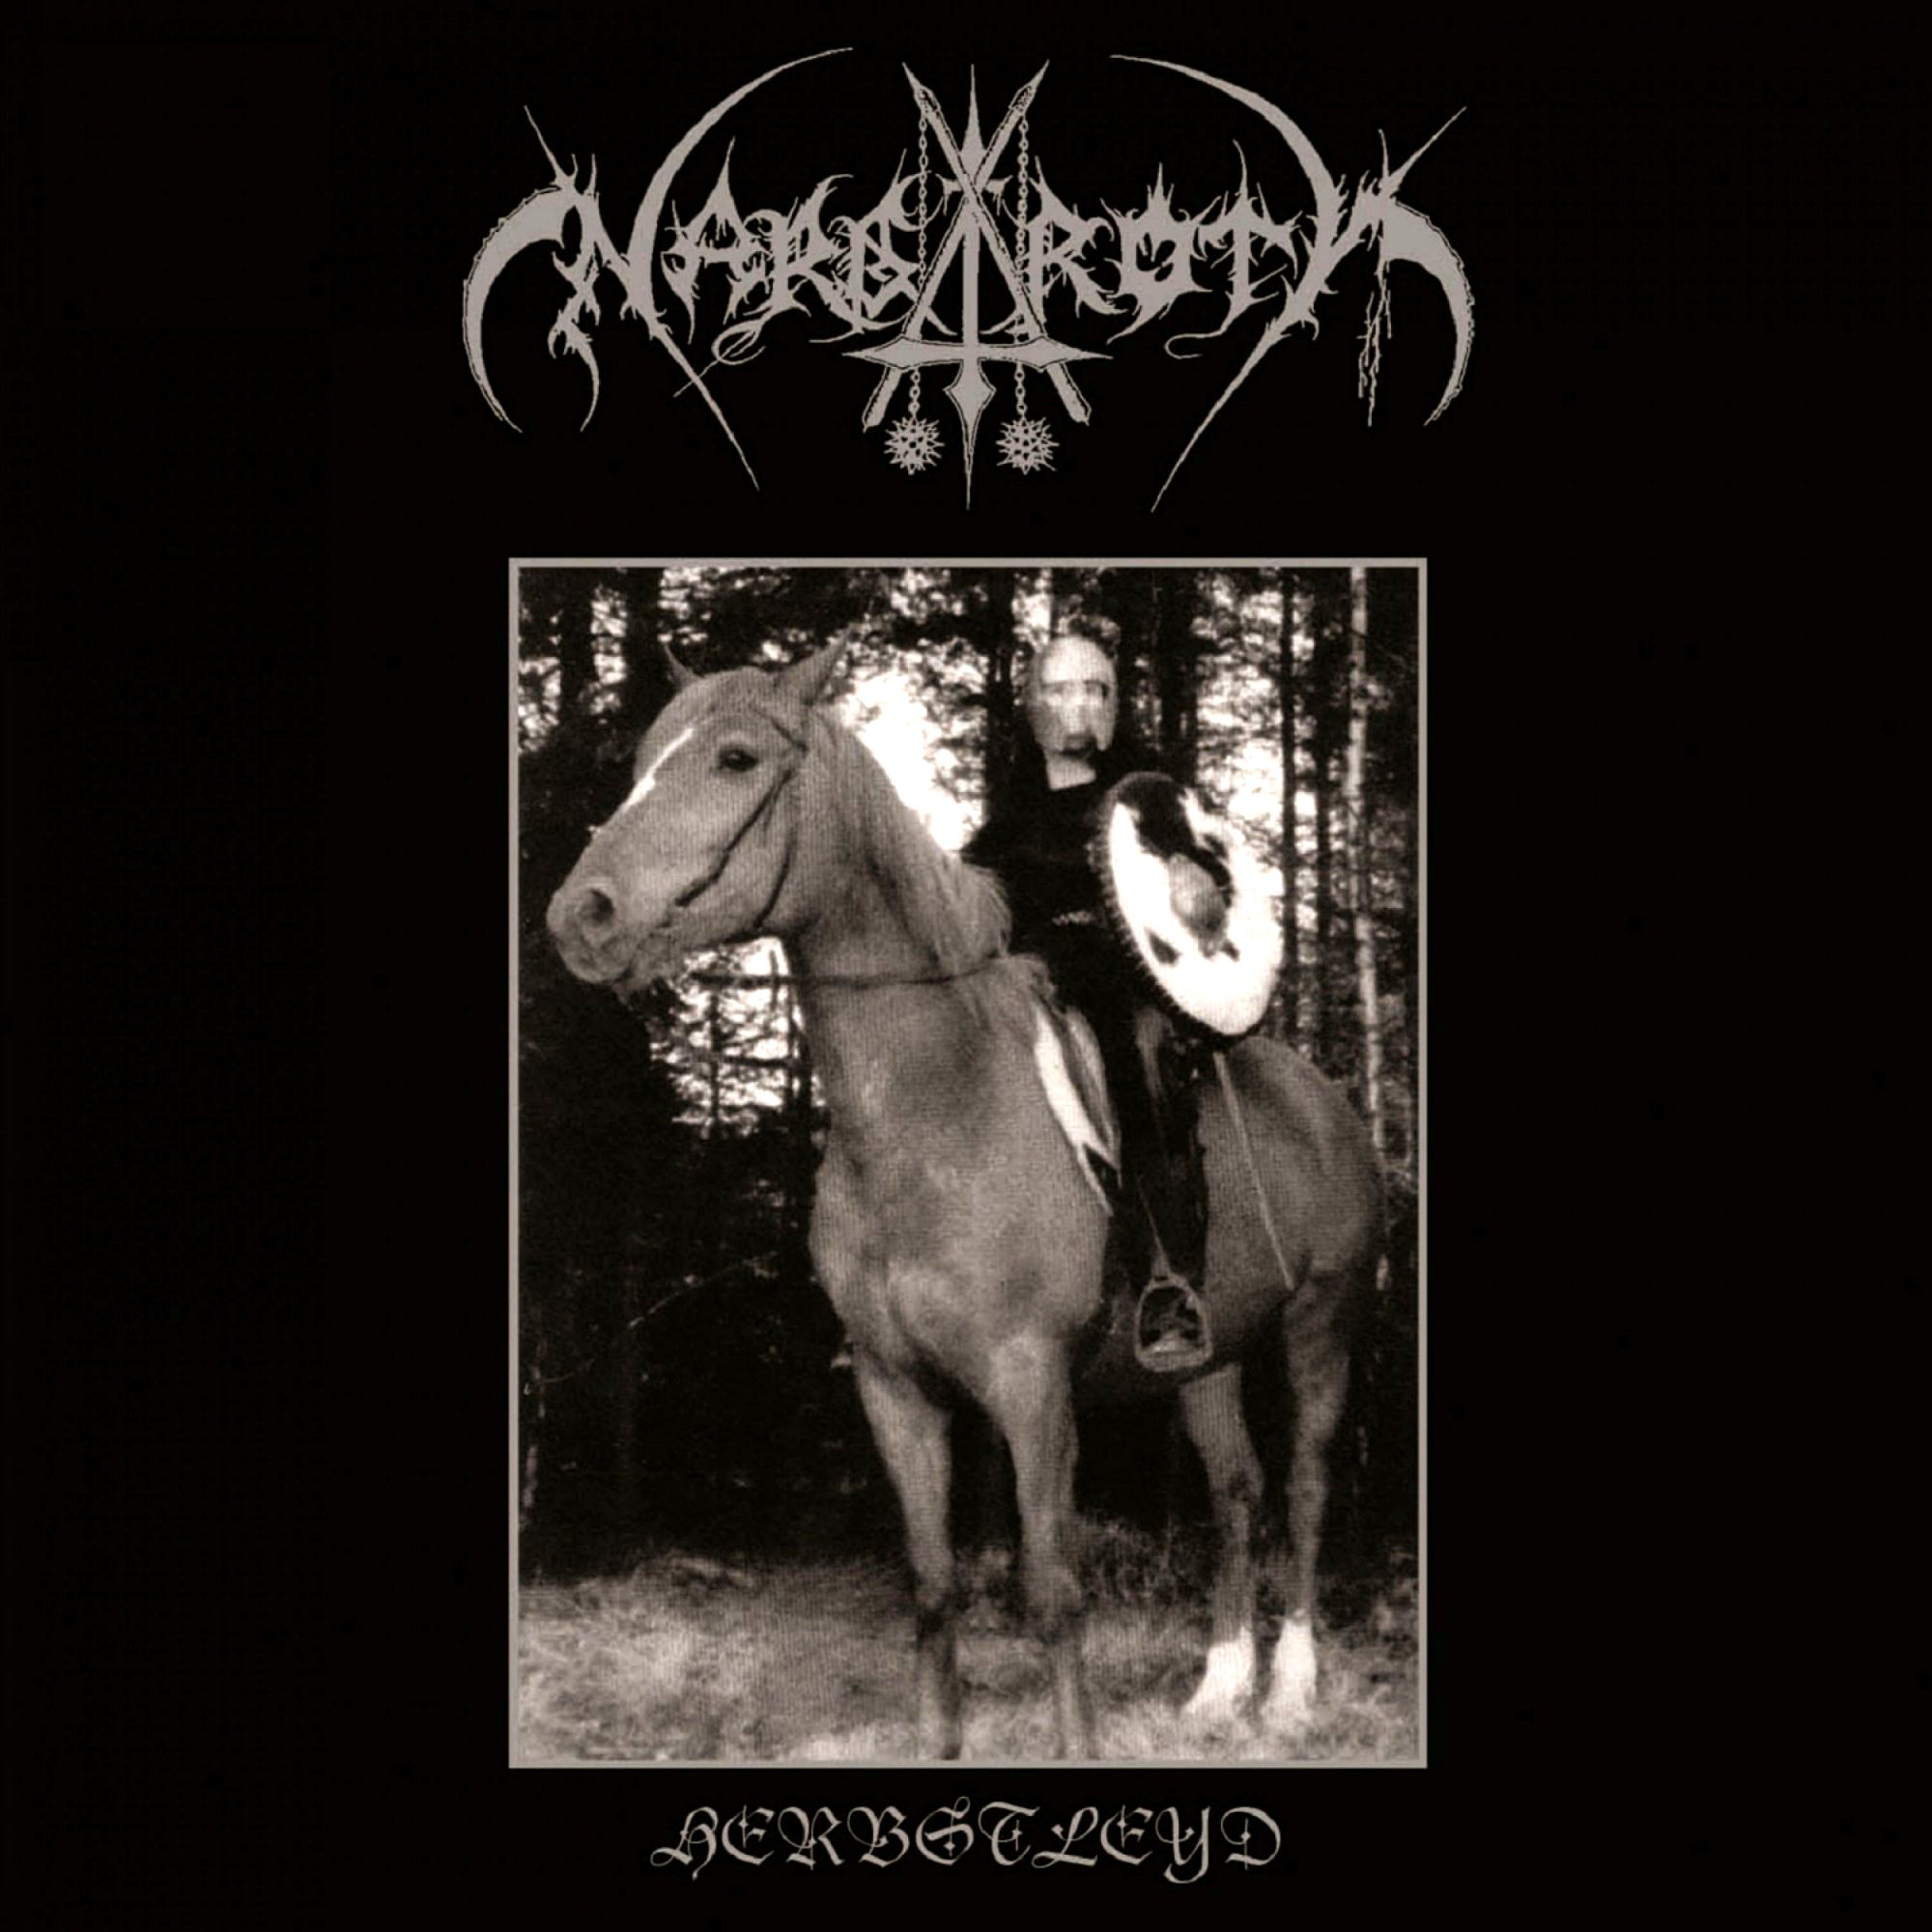 Review for Nargaroth - Herbstleyd